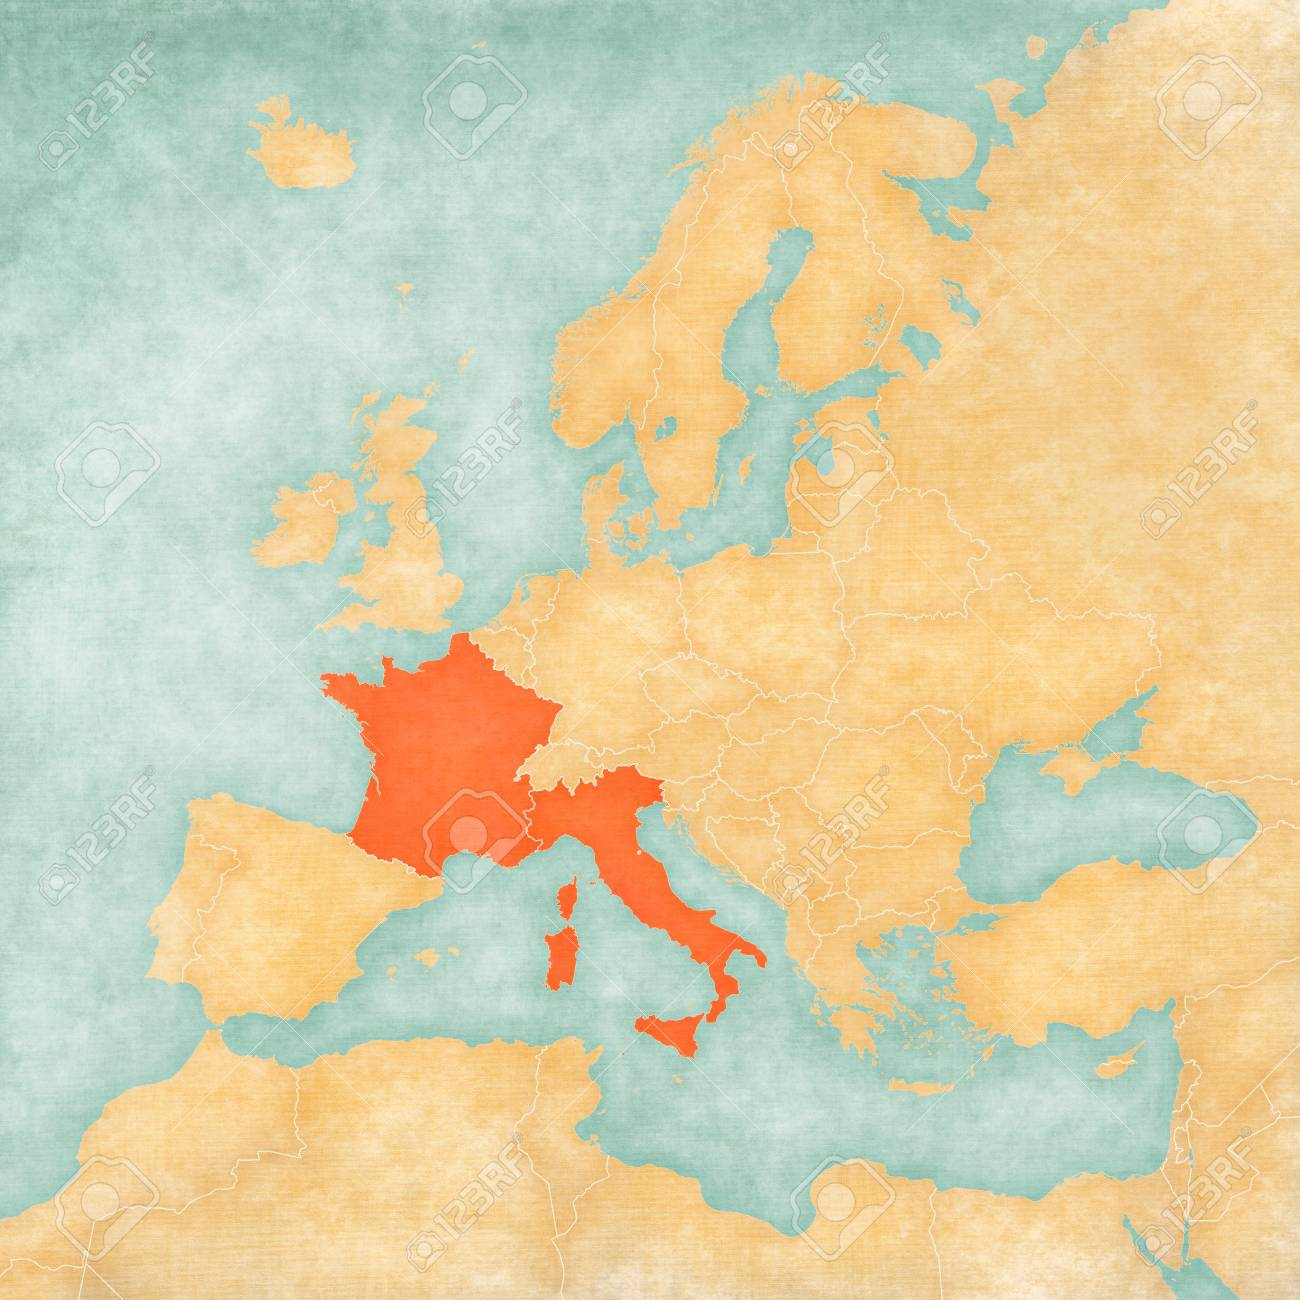 France and Italy on the map of Europe in soft grunge and vintage..